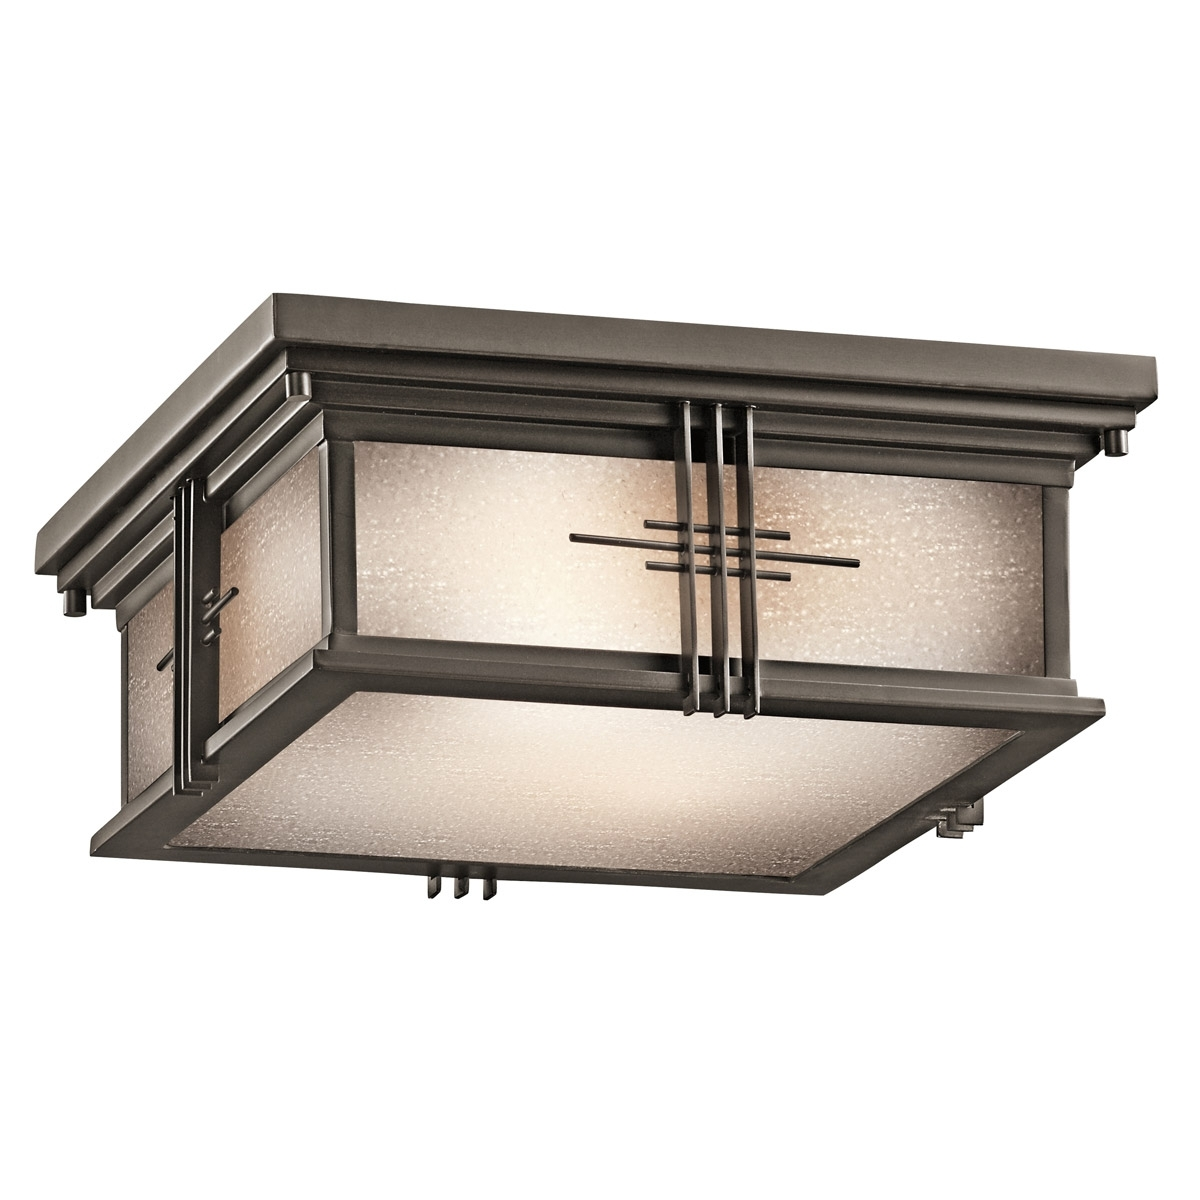 Inspiration about 49164Oz Portman Square Outdoor Flush Mount Ceiling Fixture Intended For Outdoor Ceiling Lighting Fixtures (#8 of 15)